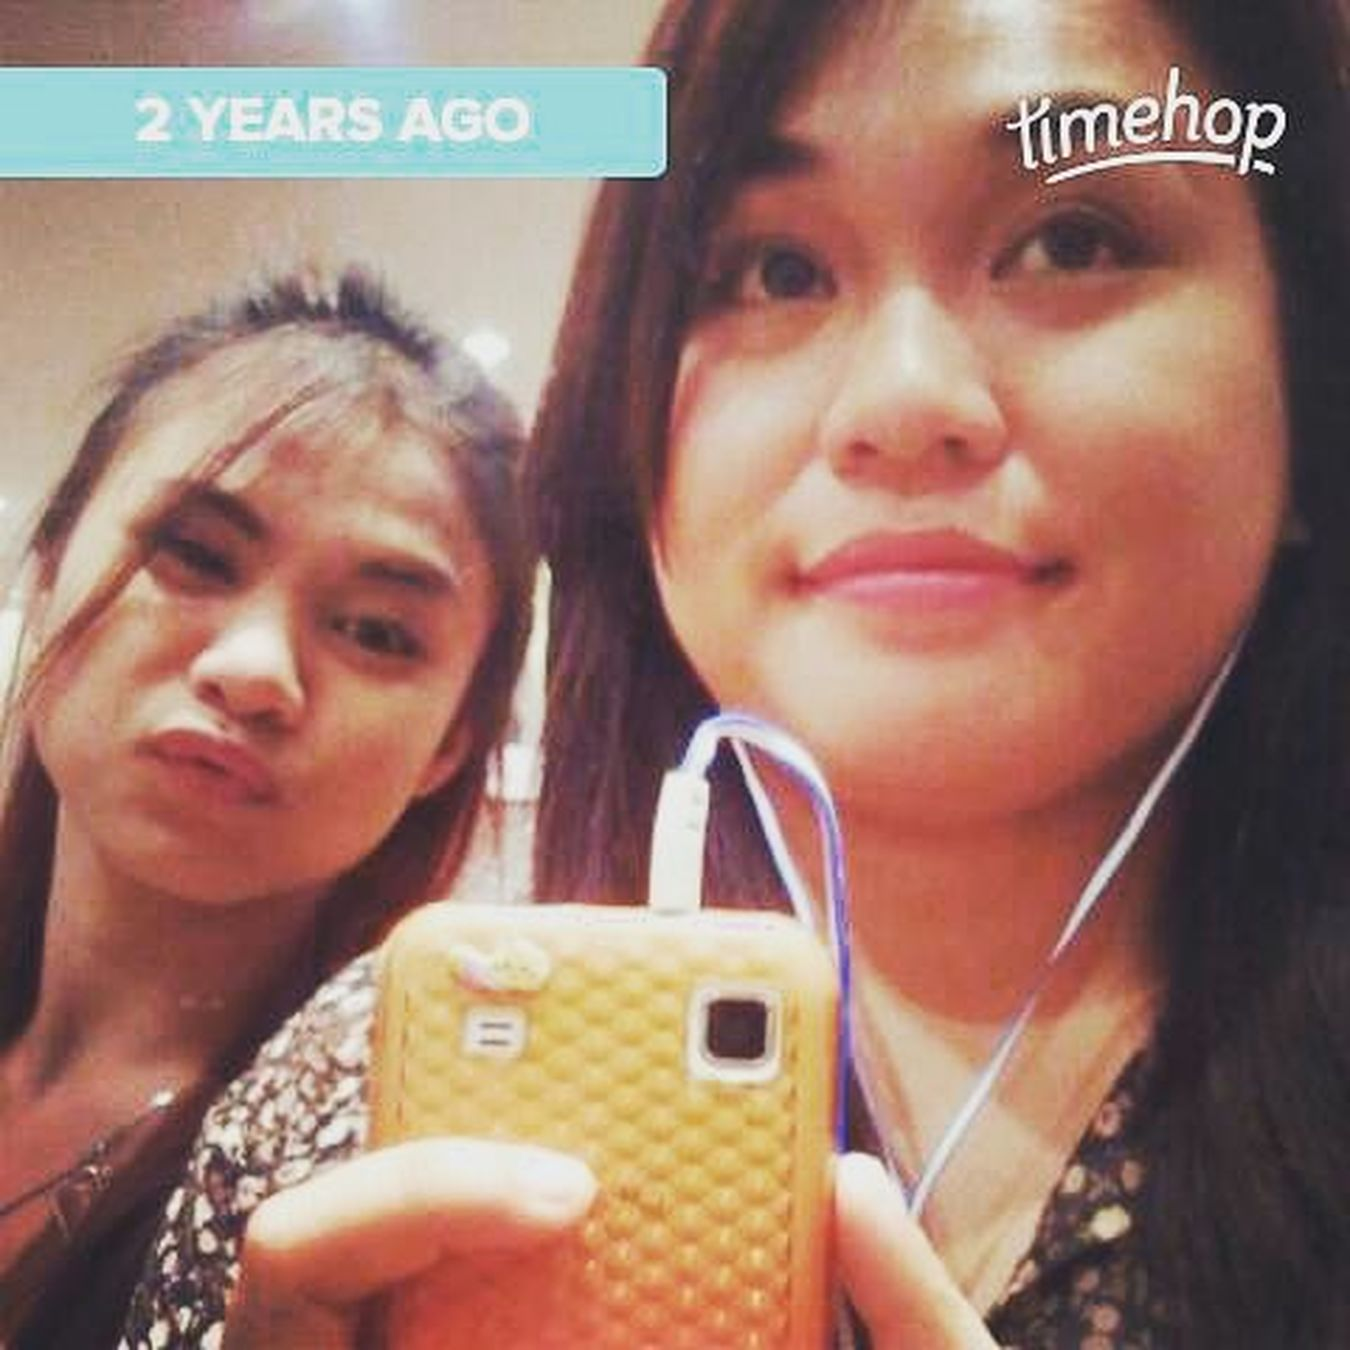 Miss my youth day 😂😳💆👱👌. Timehopmemories Timegoesby Hahaha